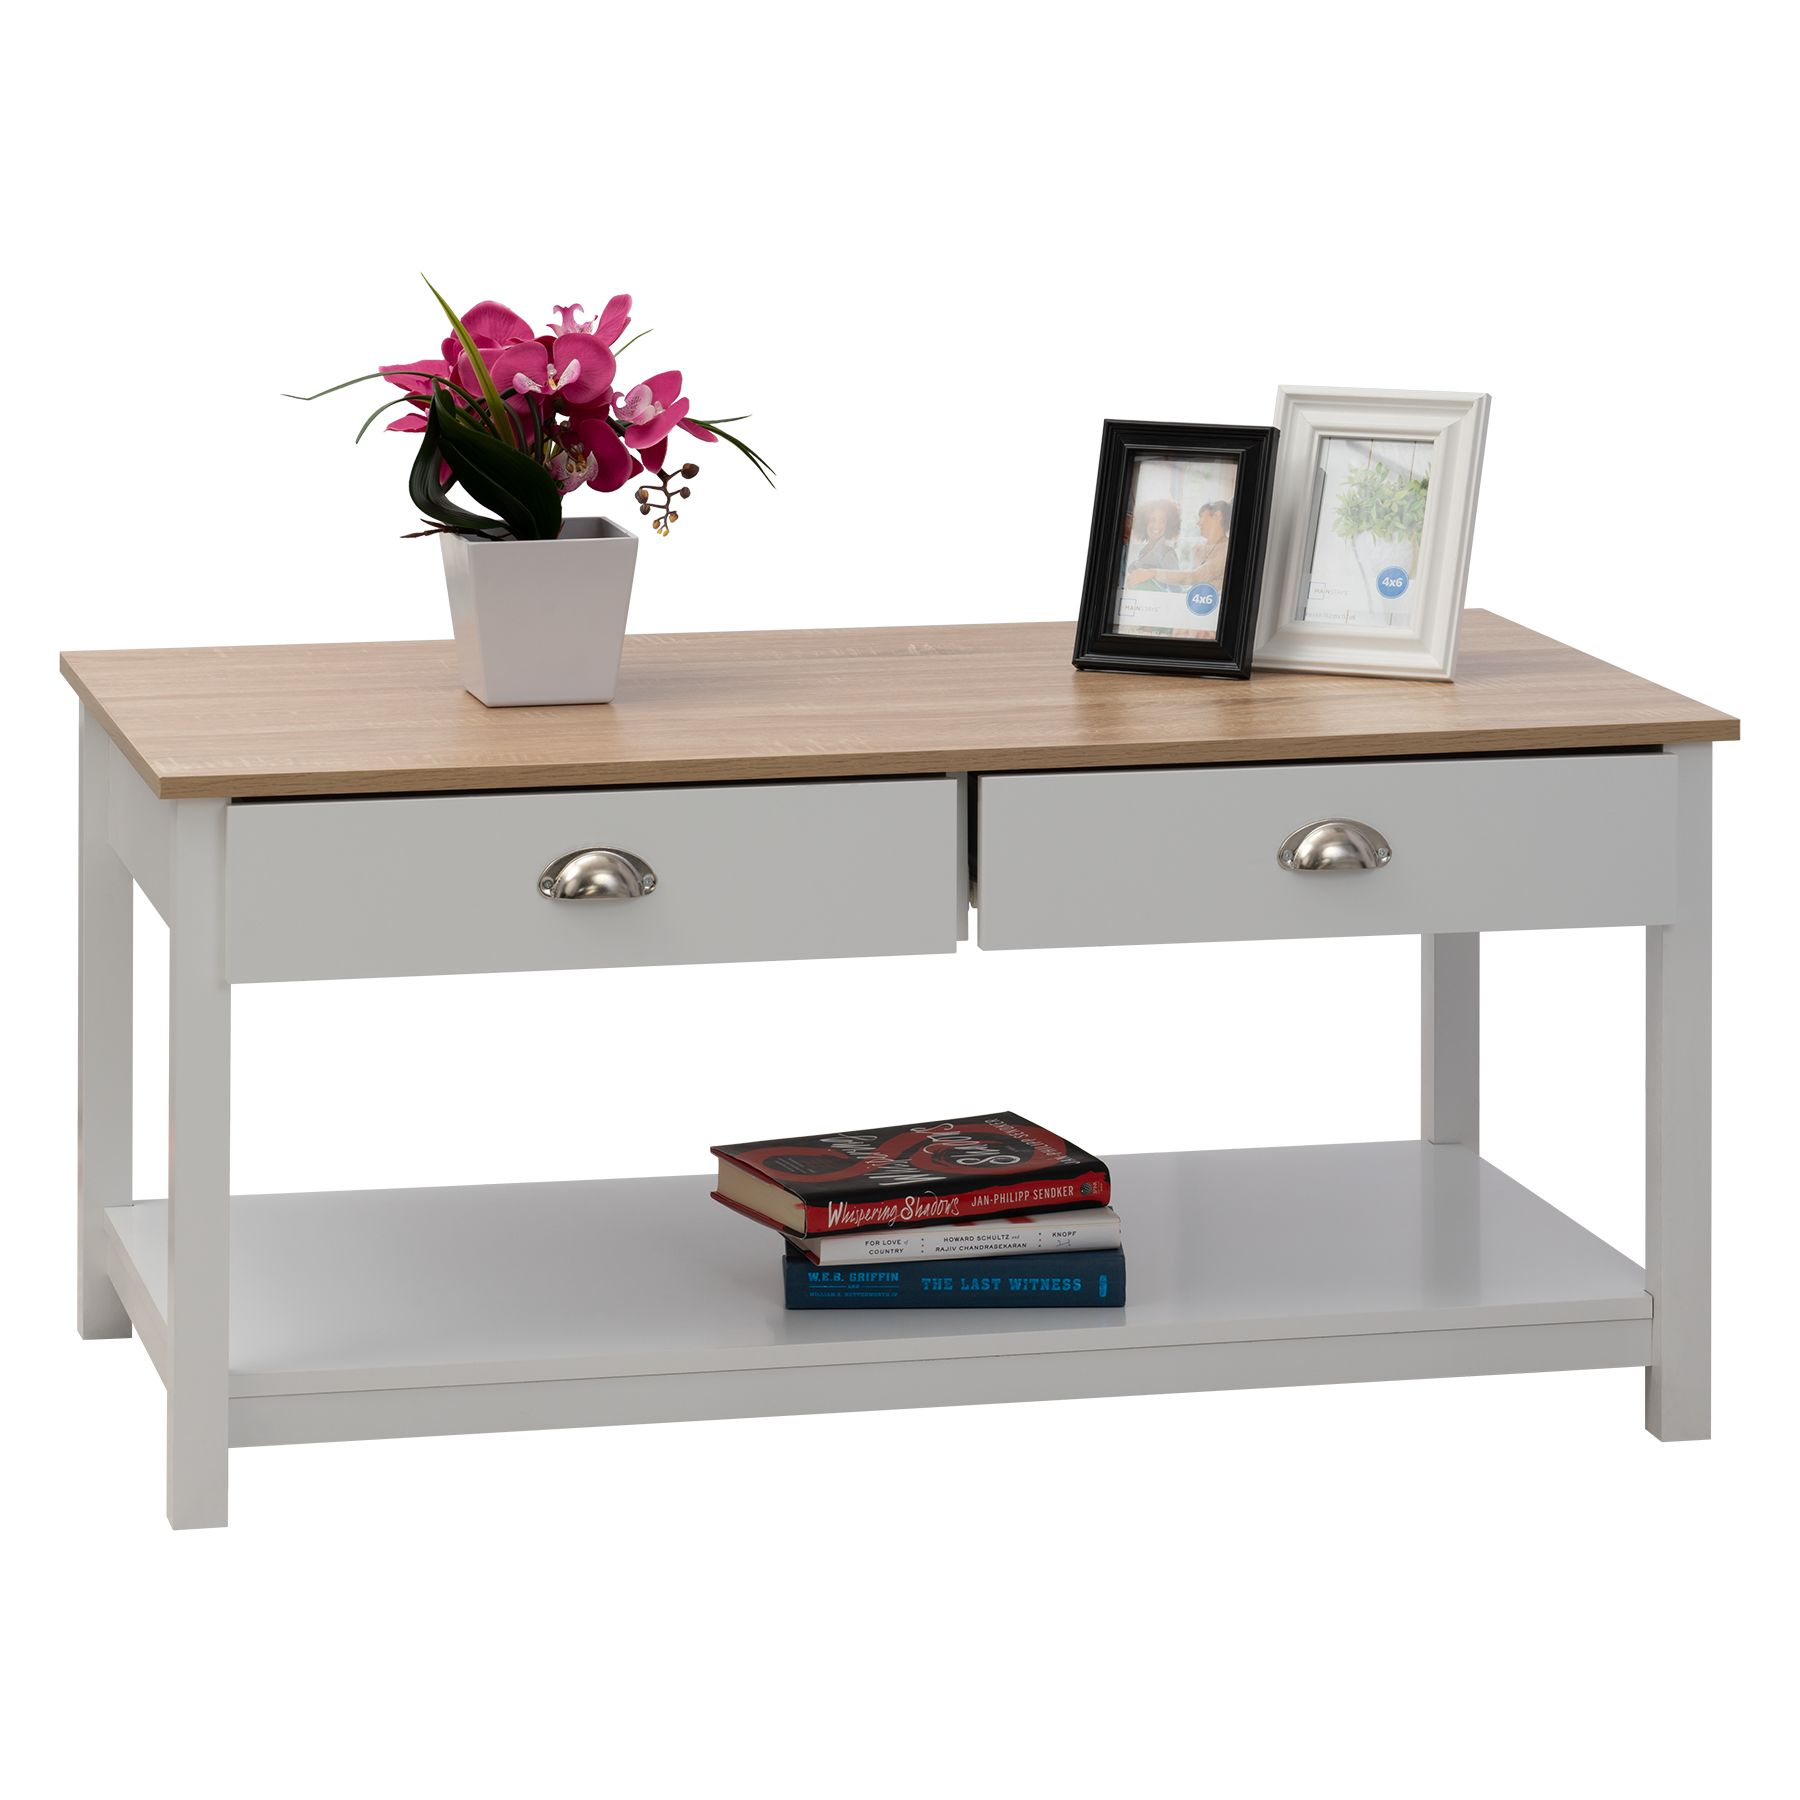 Fineboard Fineboard Coffee Table With 2 Drawers And 1 Large Storage Shelf White Beige